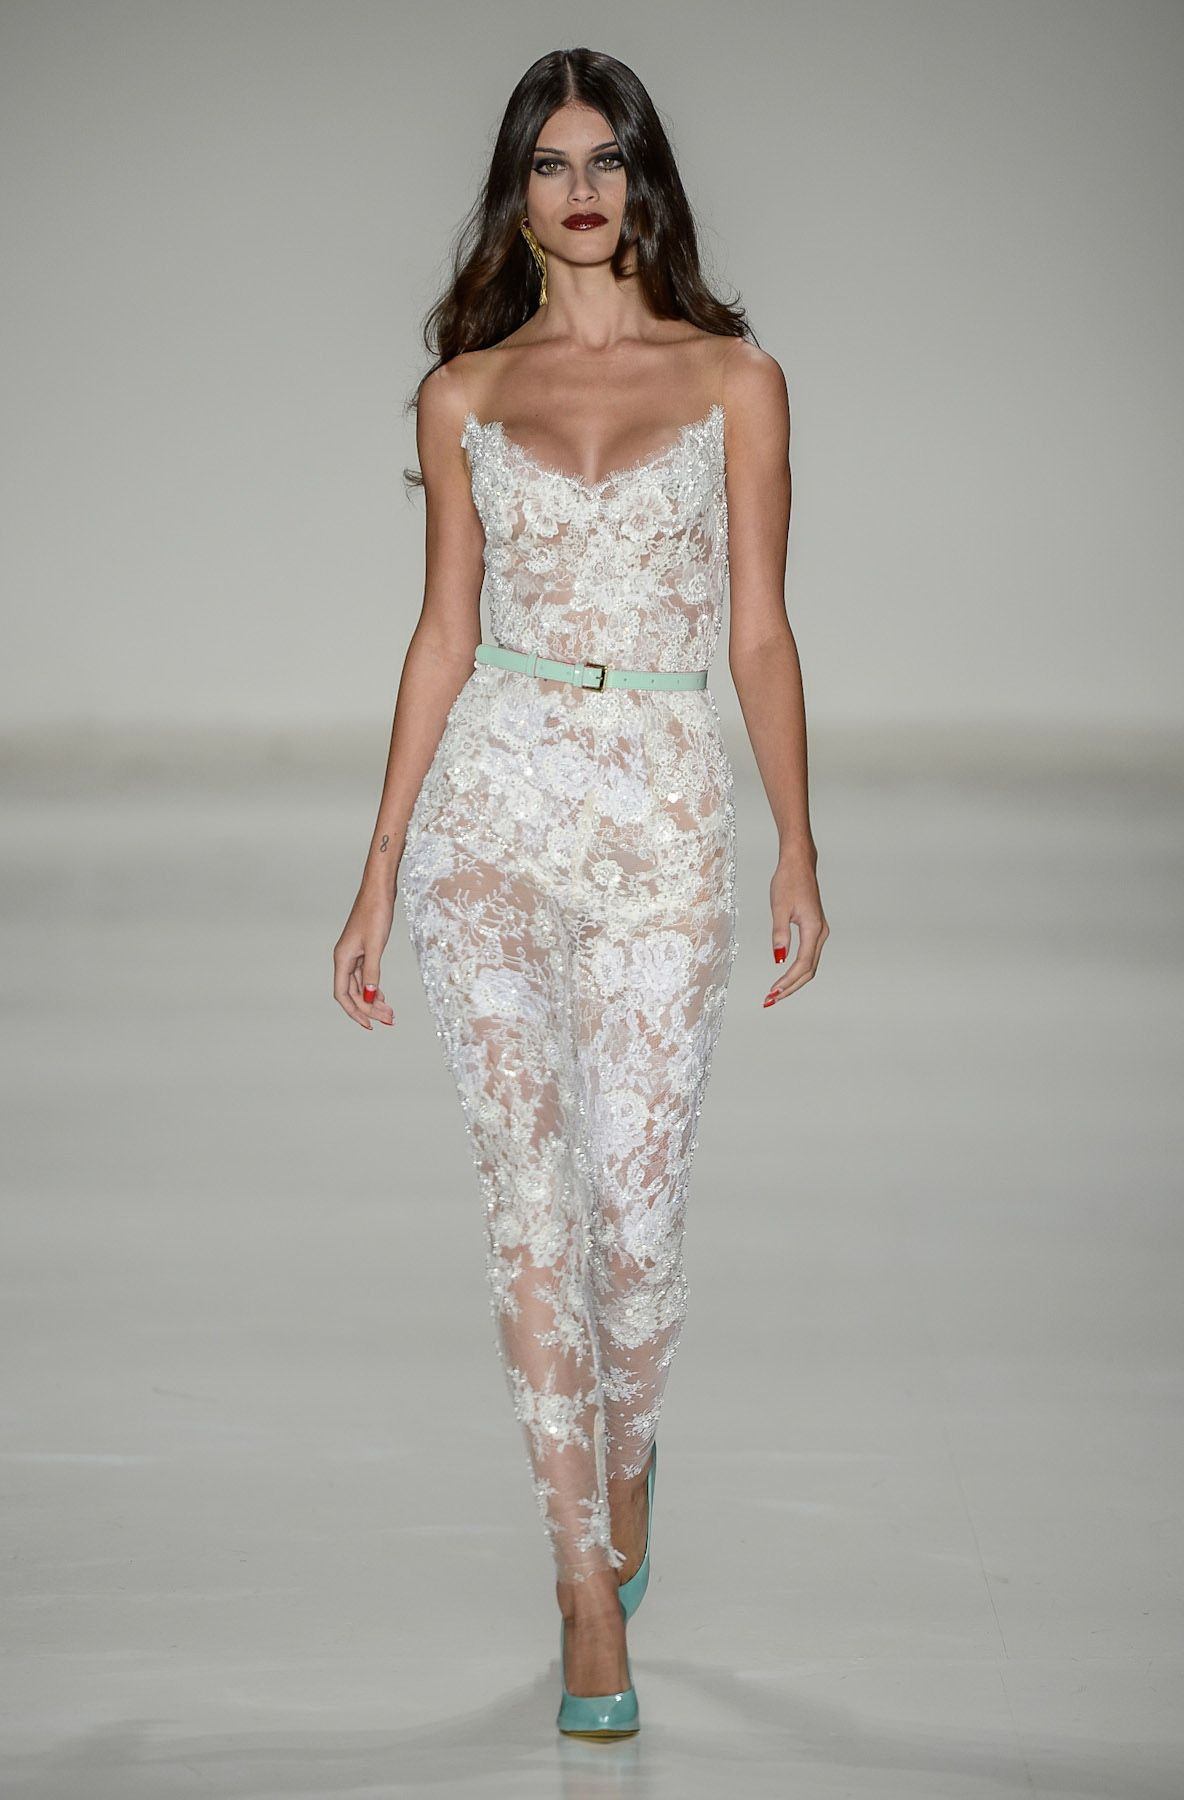 White Lace Jumpsuit Photo Album - Reikian